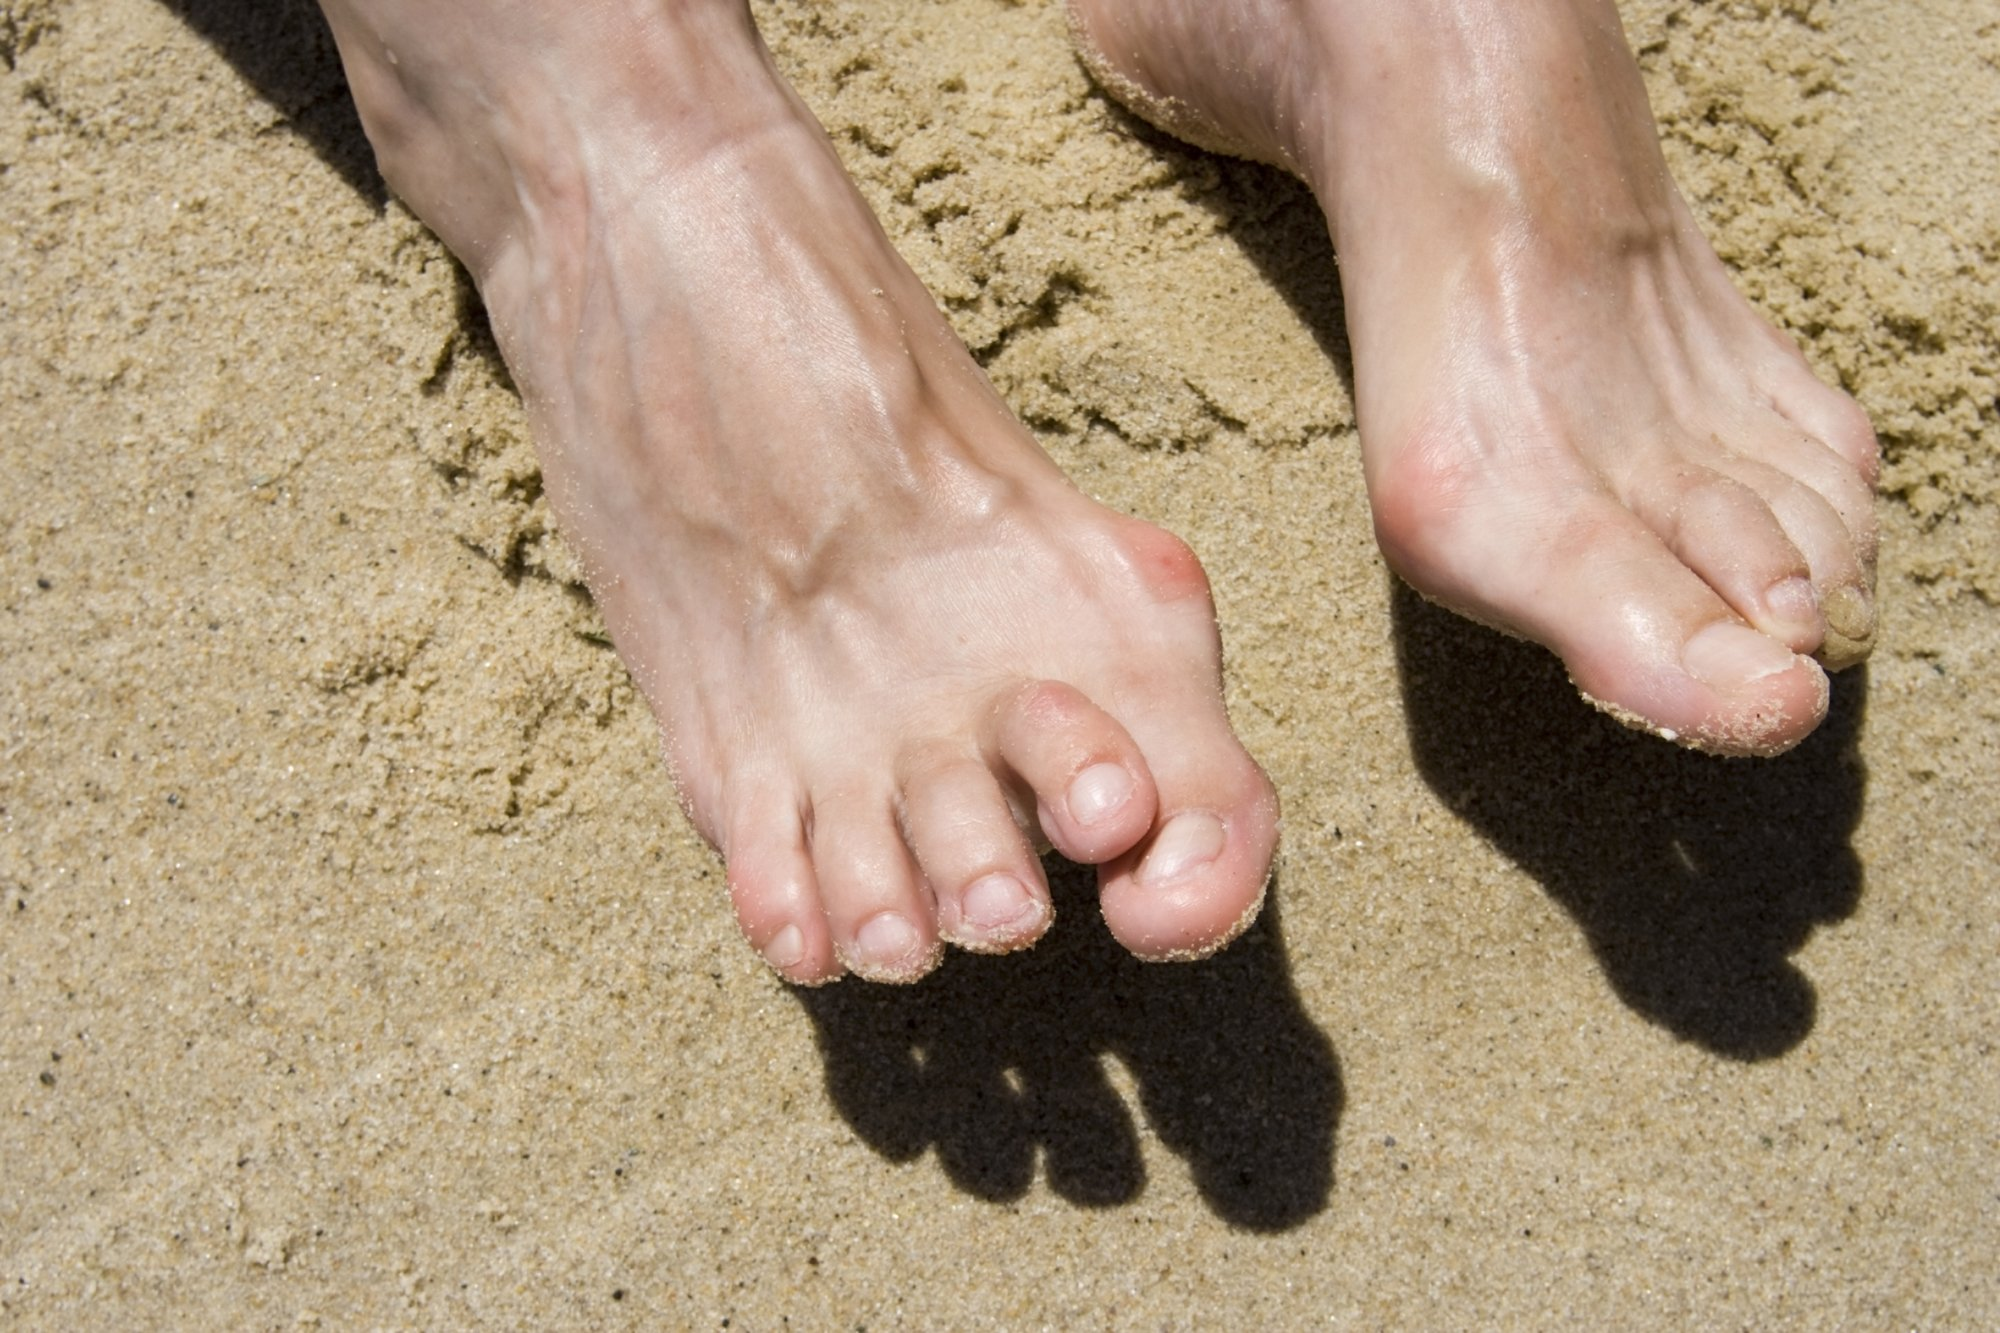 Man Moving Hammertoe Through Sand